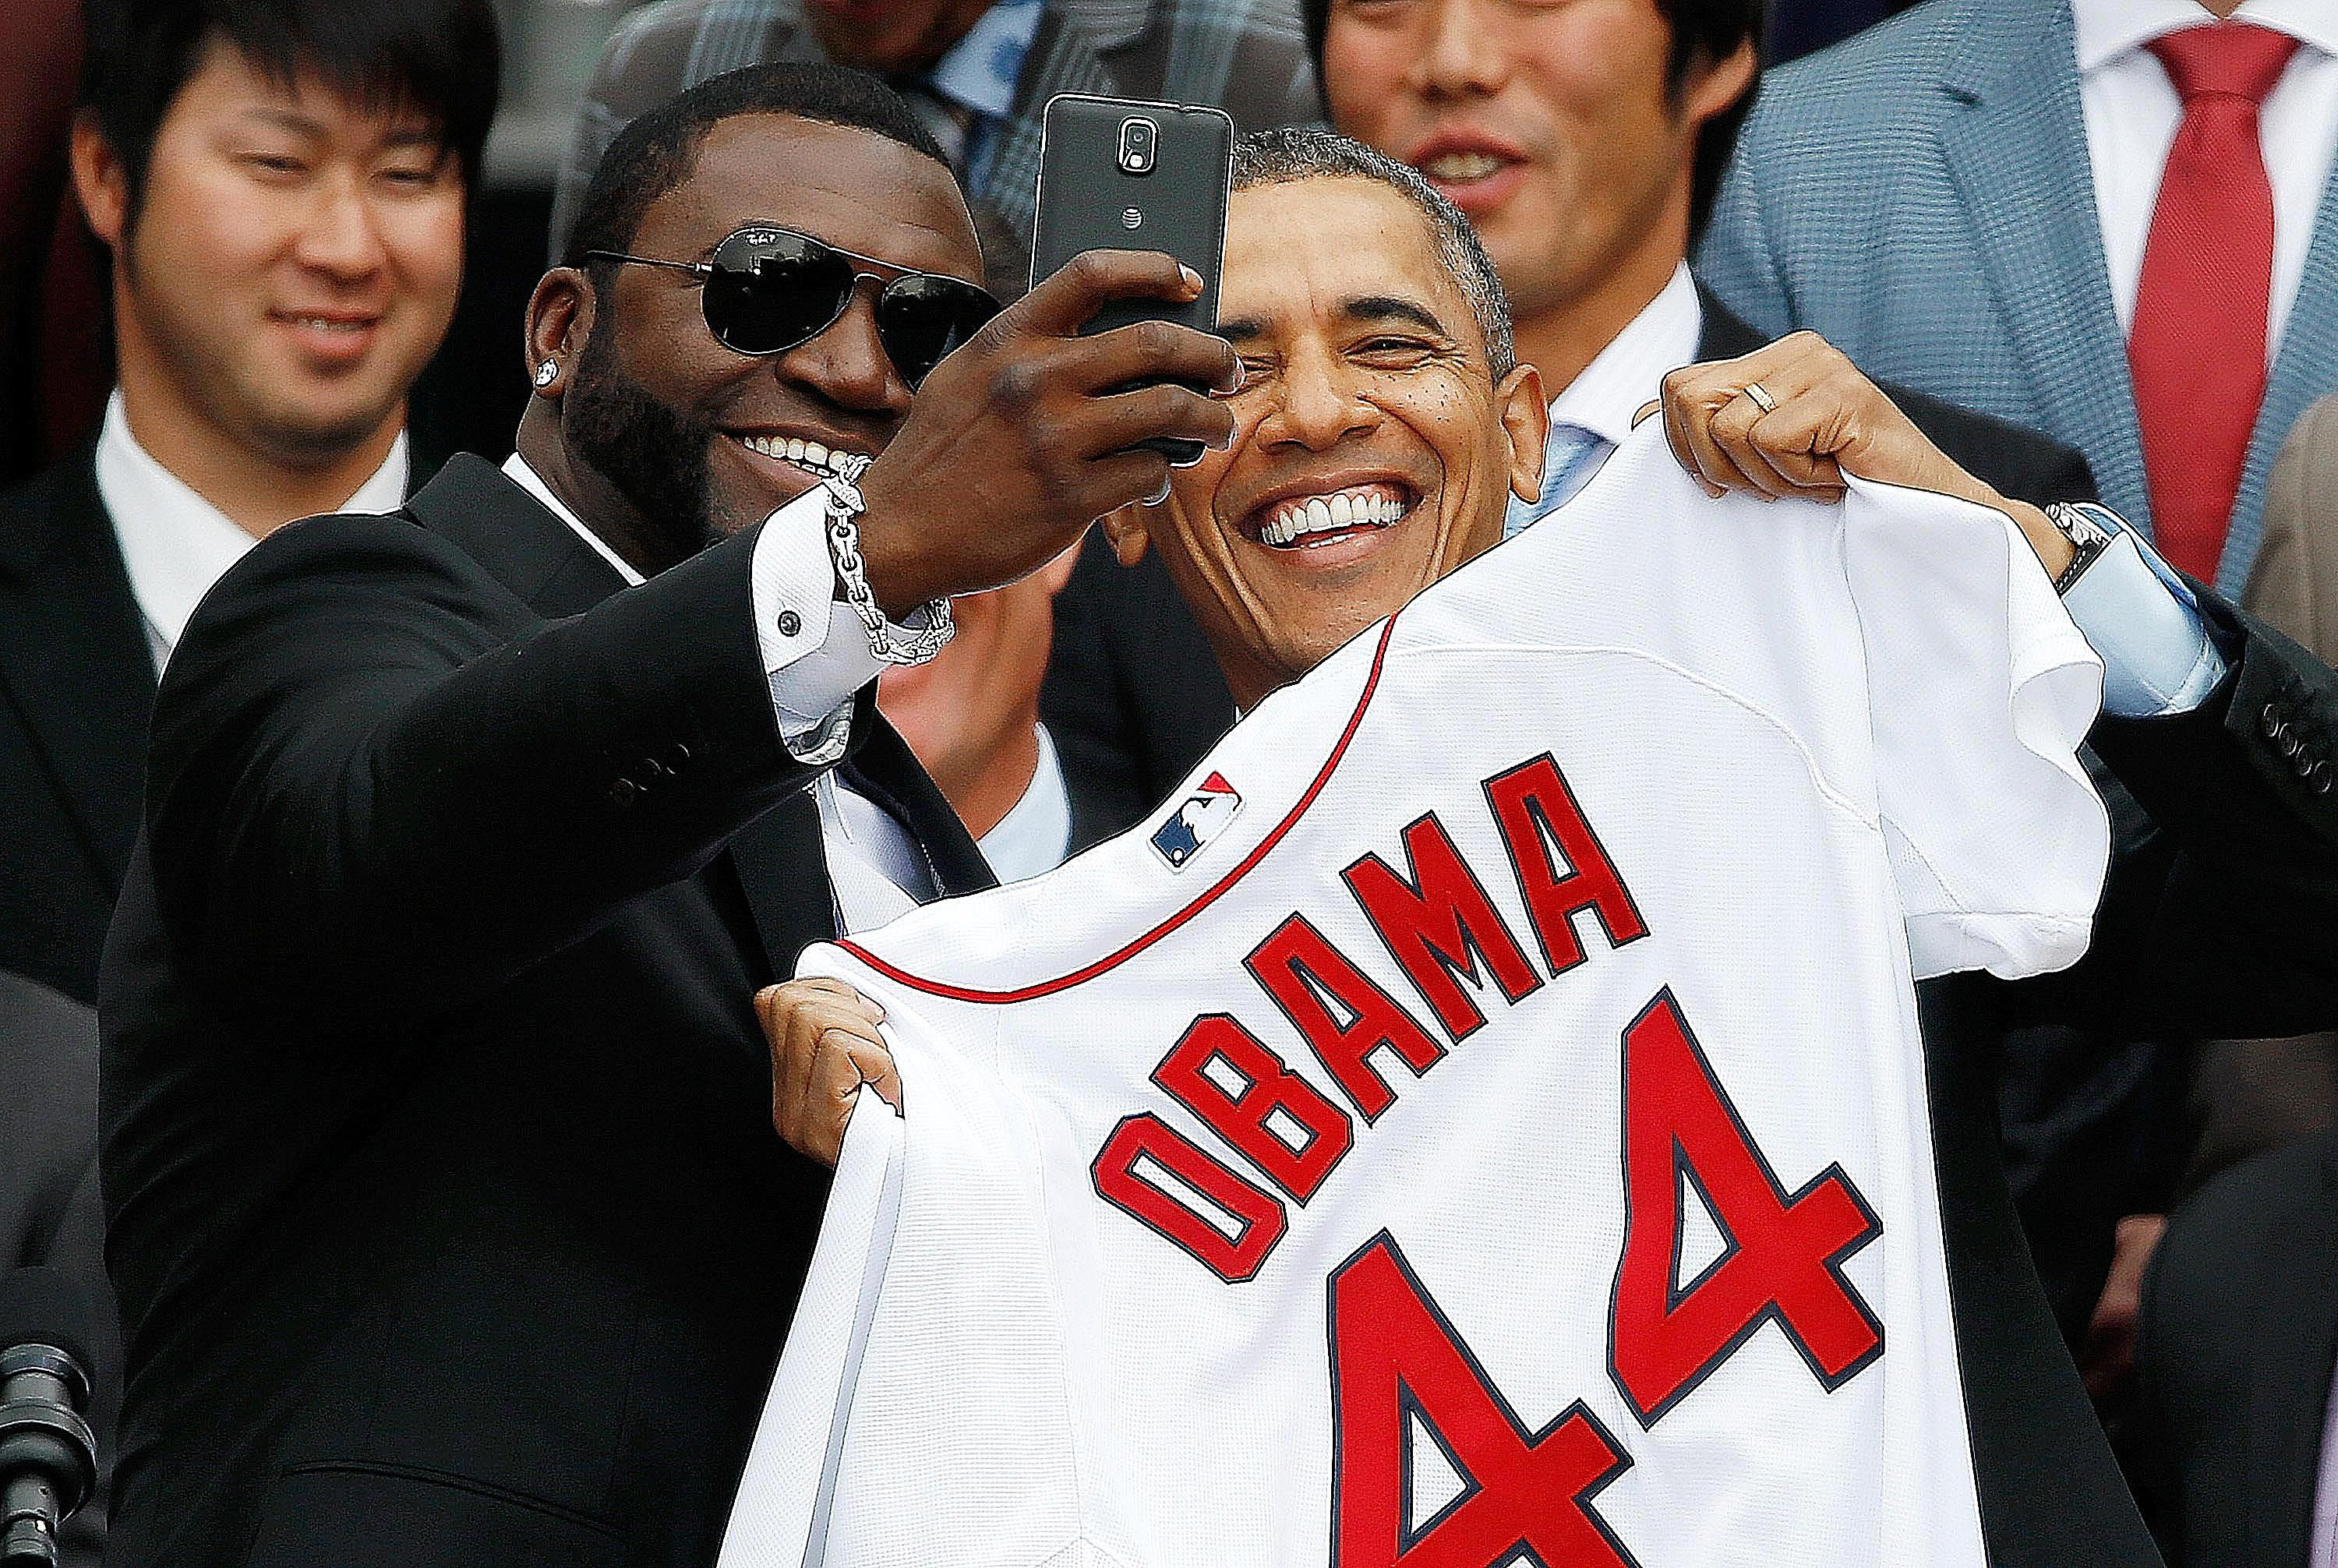 President Obama and David Ortiz of the Boston Red Sox take a selfie together at the White House ceremony honoring the 2013 World Series Champions. Learn how symbolic interaction theory helps explain the popularity of the selfie.